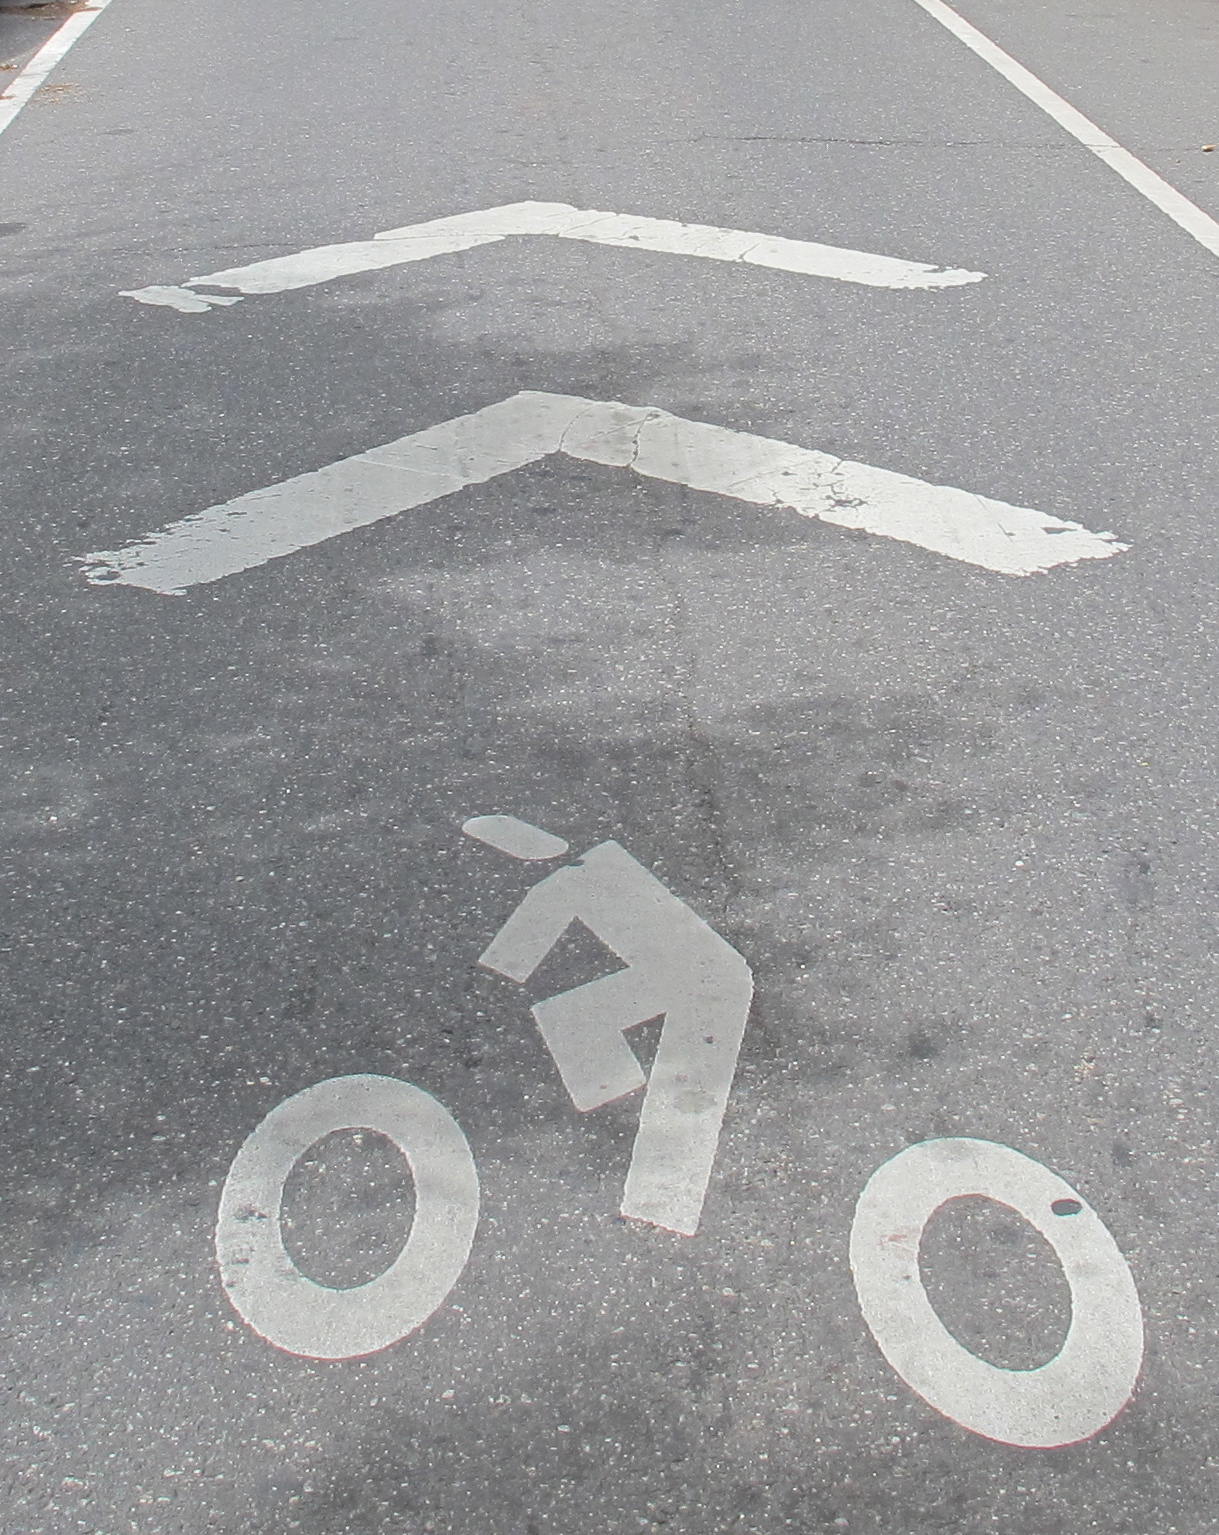 Sharrows are symbols that remind drivers and cyclists to share the lane.